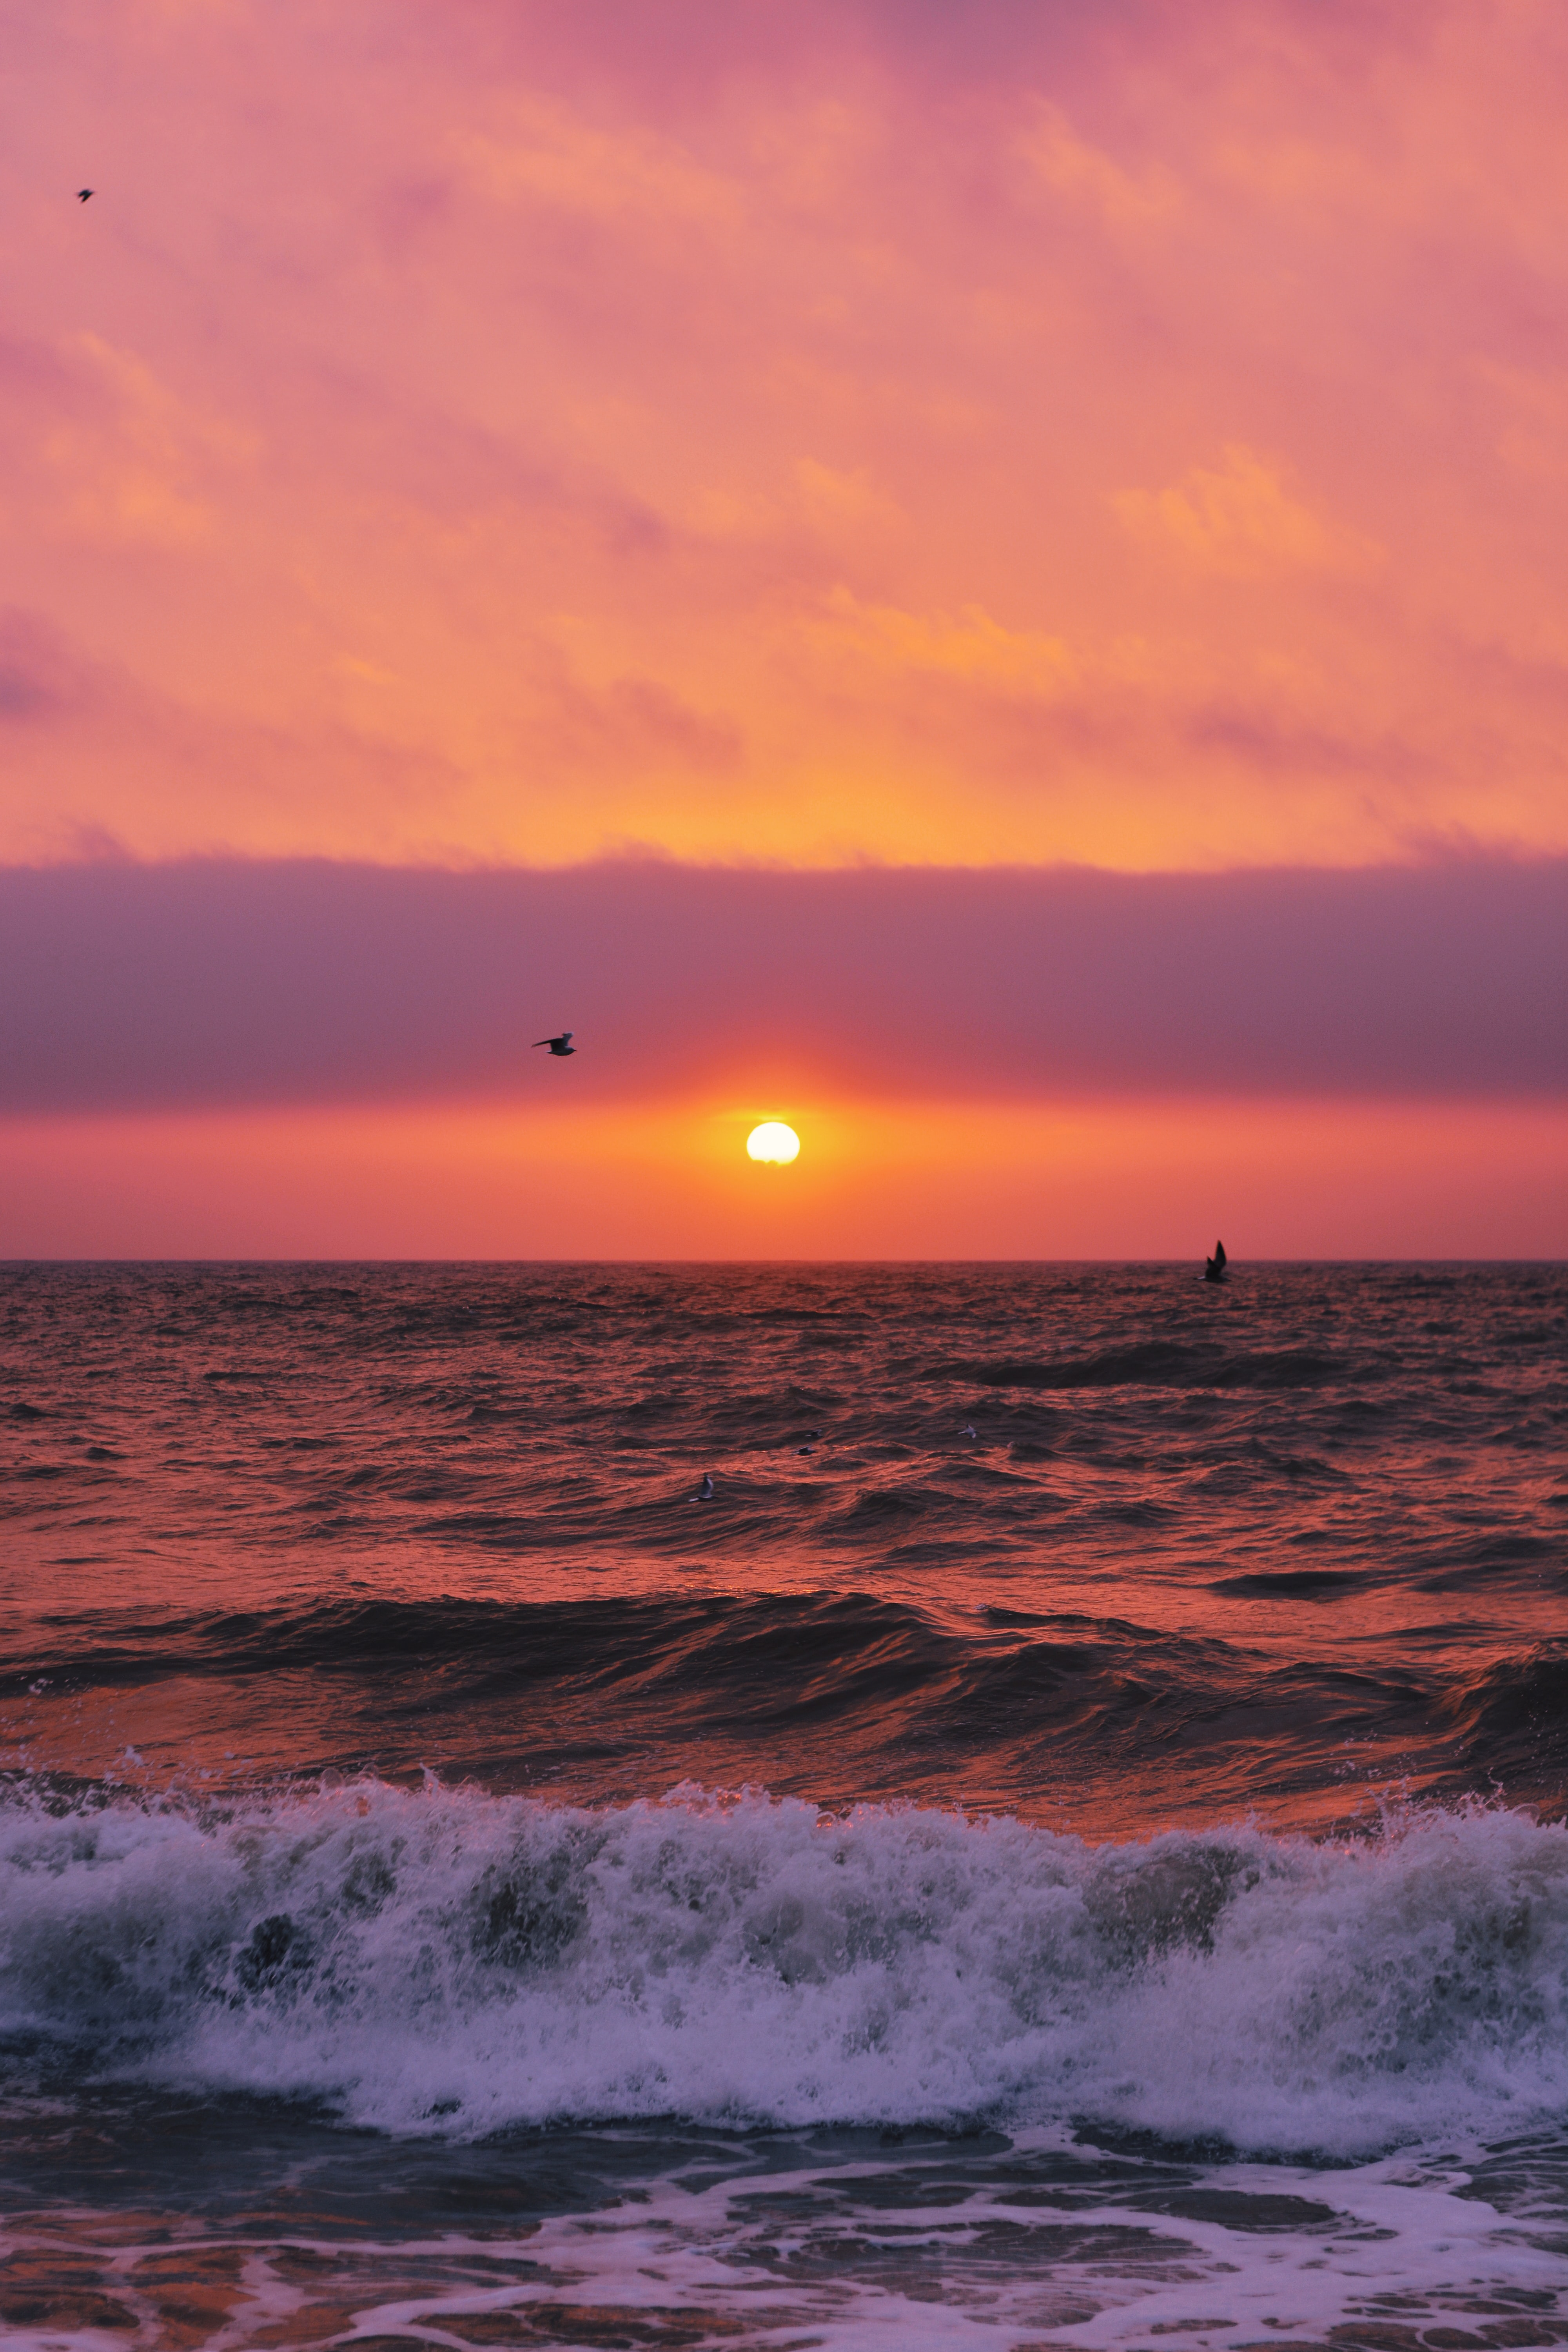 time lapse photography of ocean waves during sunset